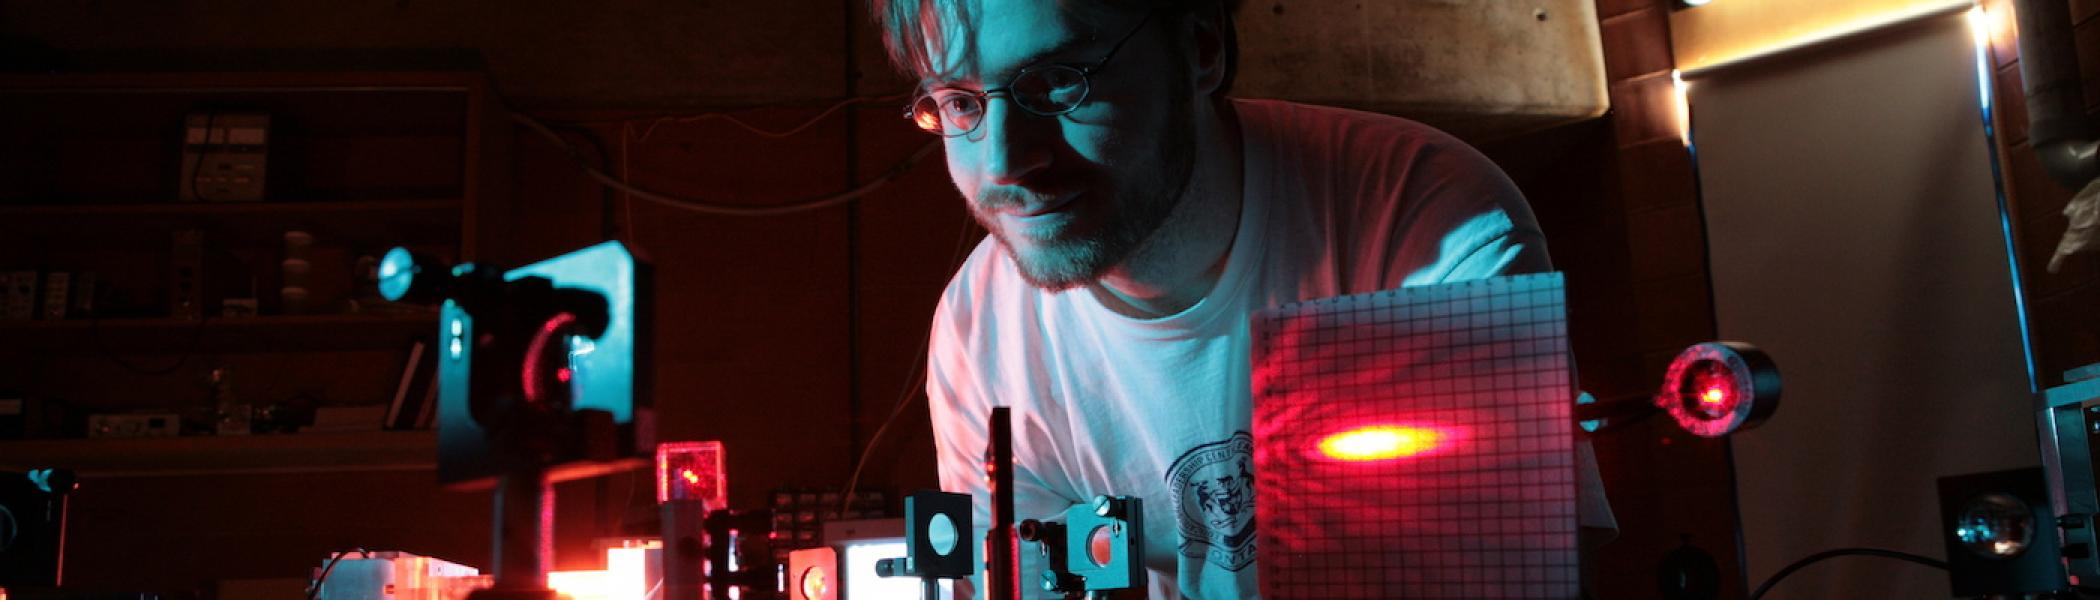 A male student looking down at some electronics on his desk in dark red lighting